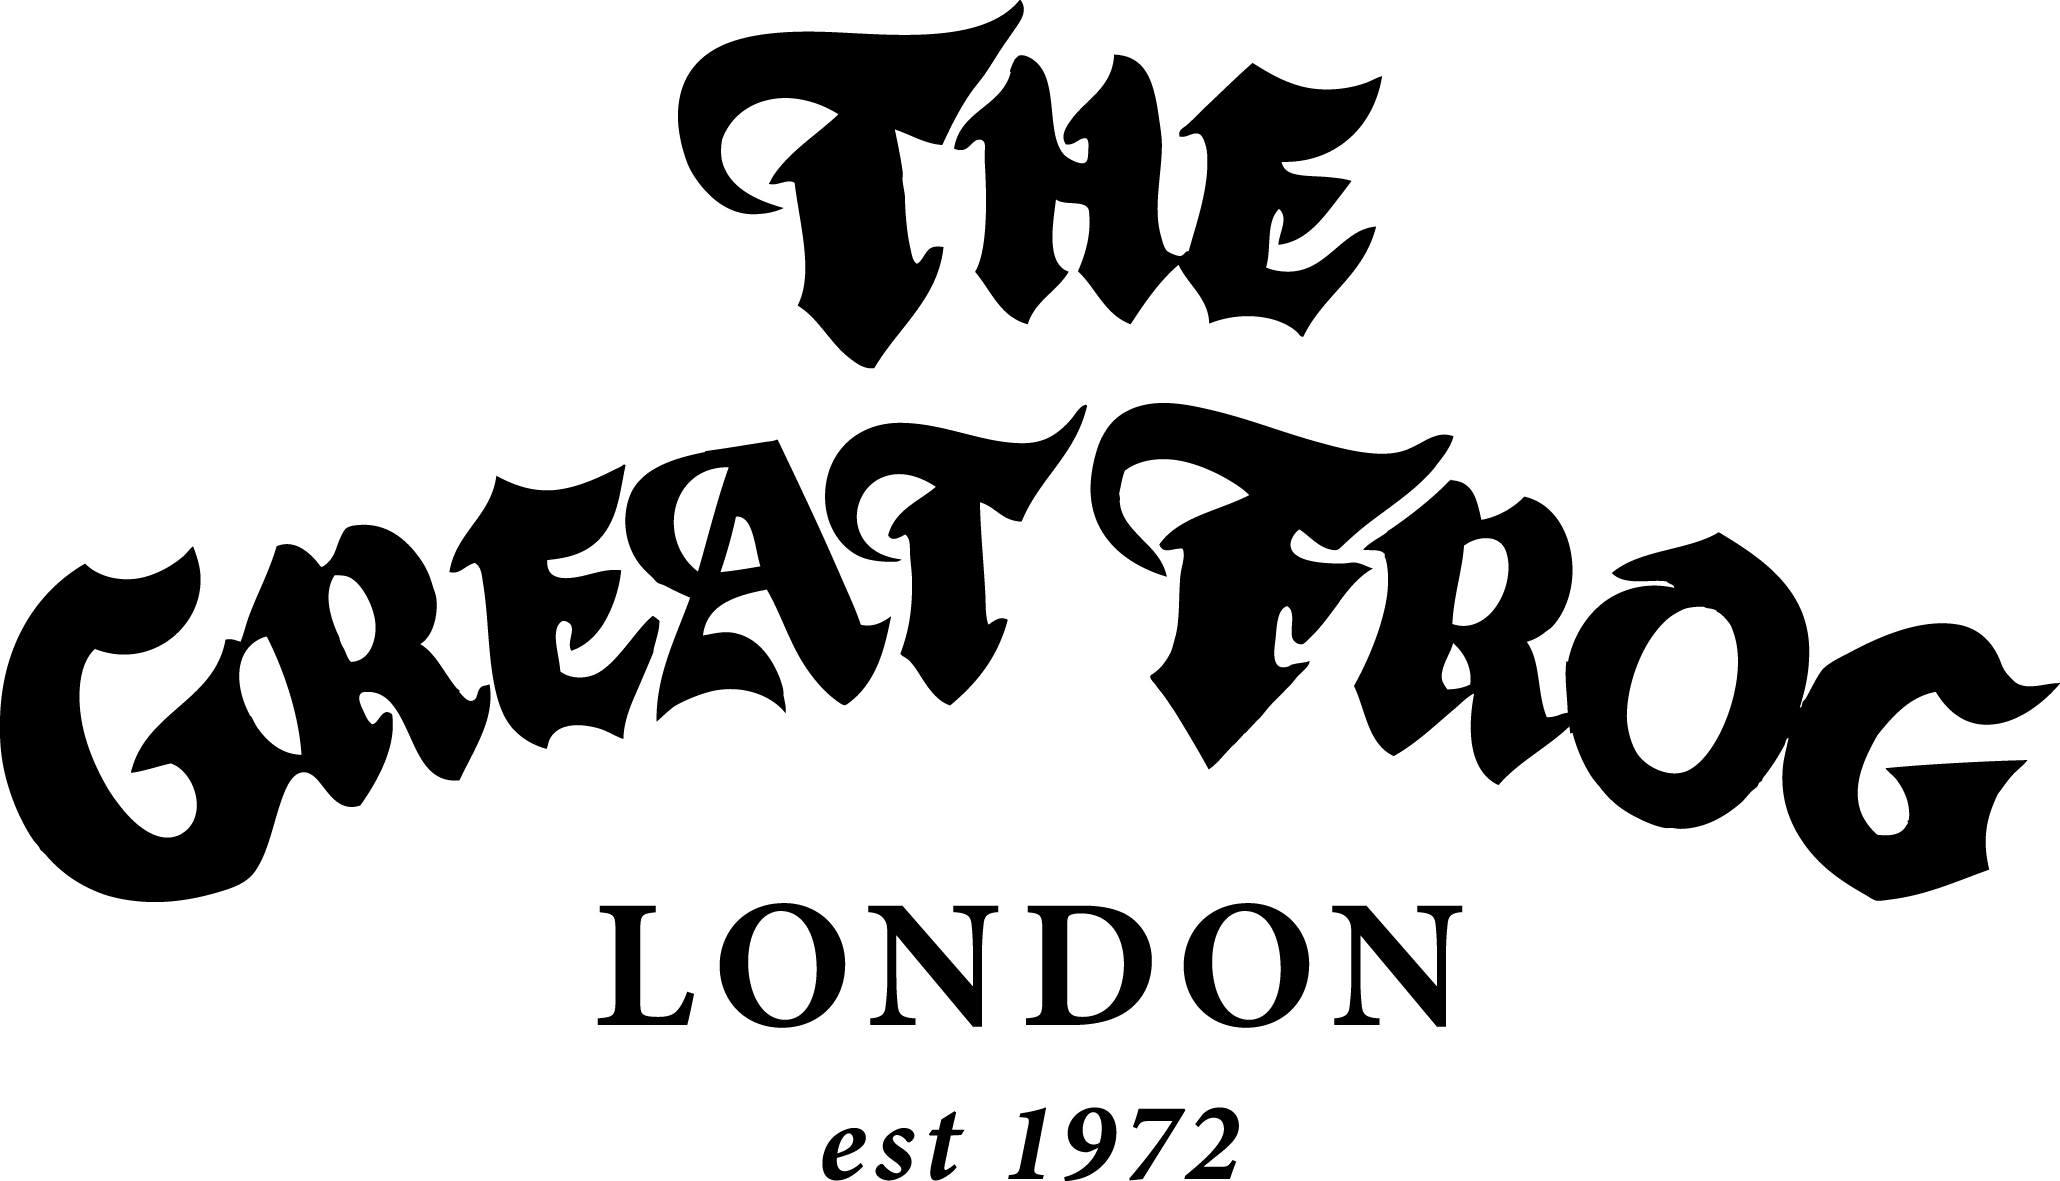 The Great Frog London